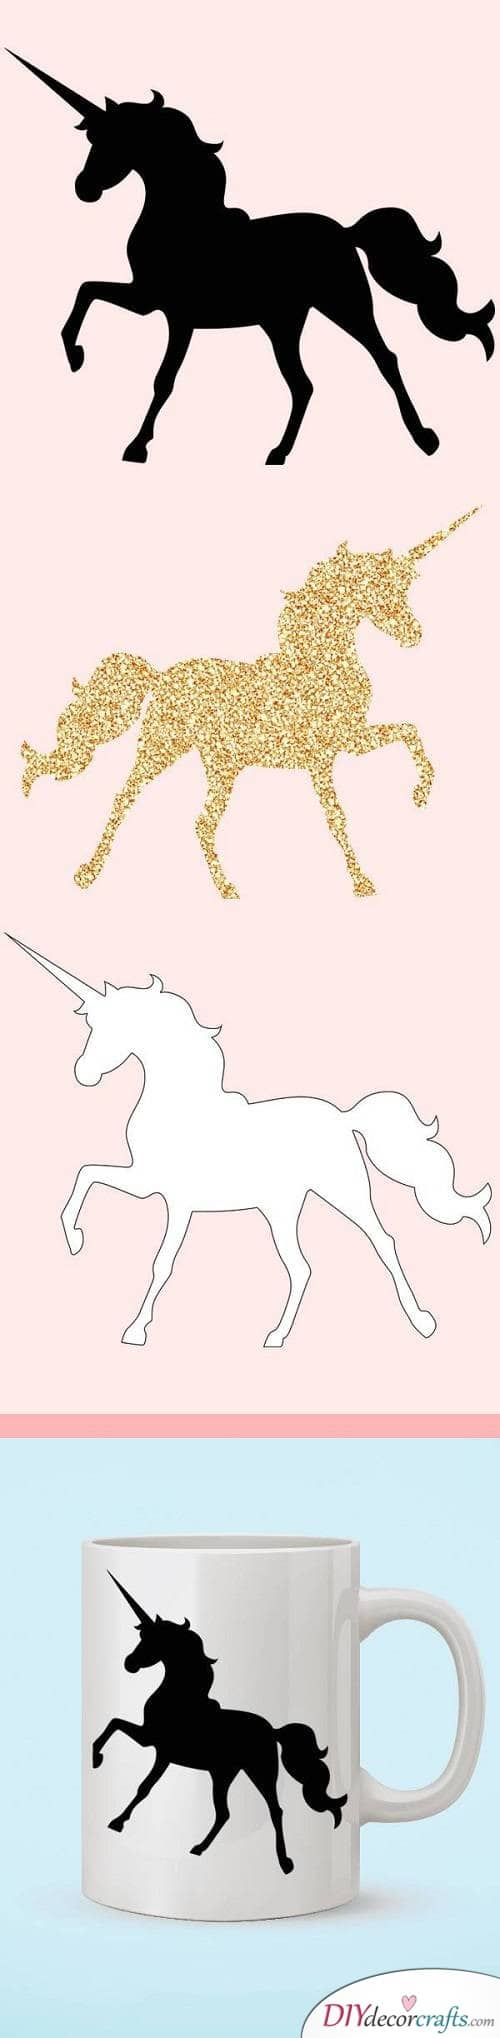 Unicorn Silhouette - DIY Unicorn